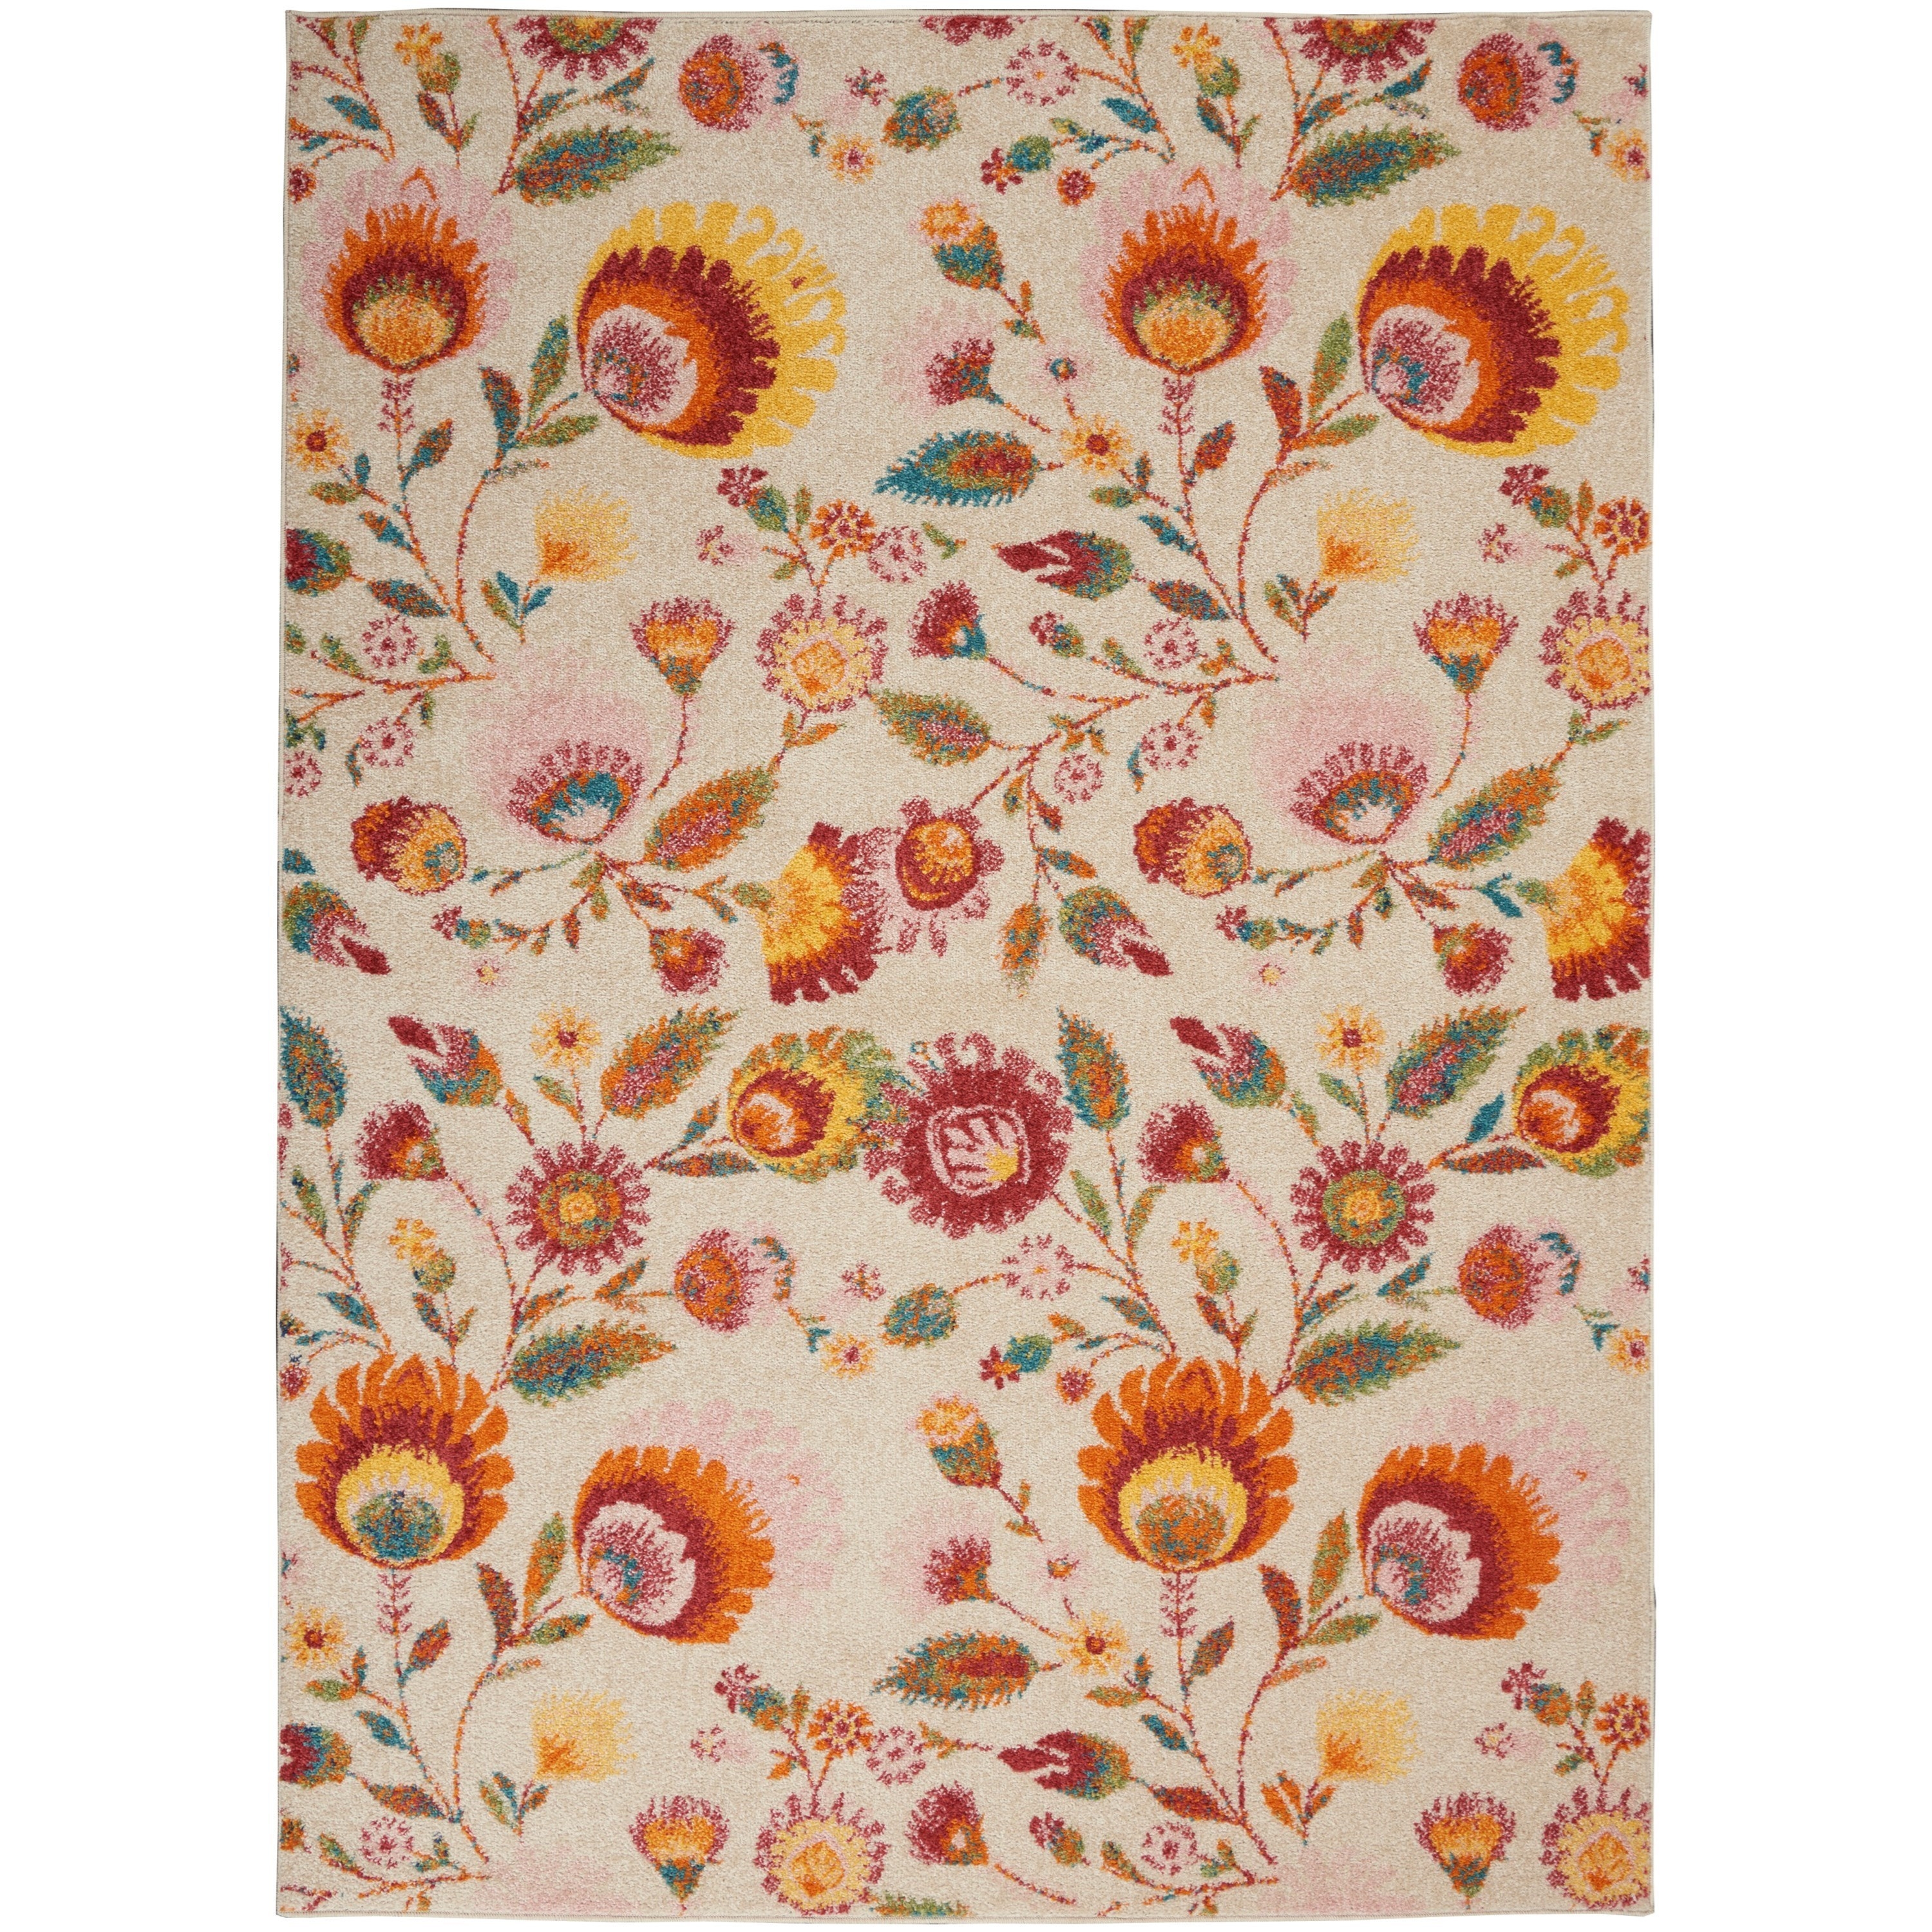 Allur 2020 5' x 7' Rug by Nourison at Home Collections Furniture